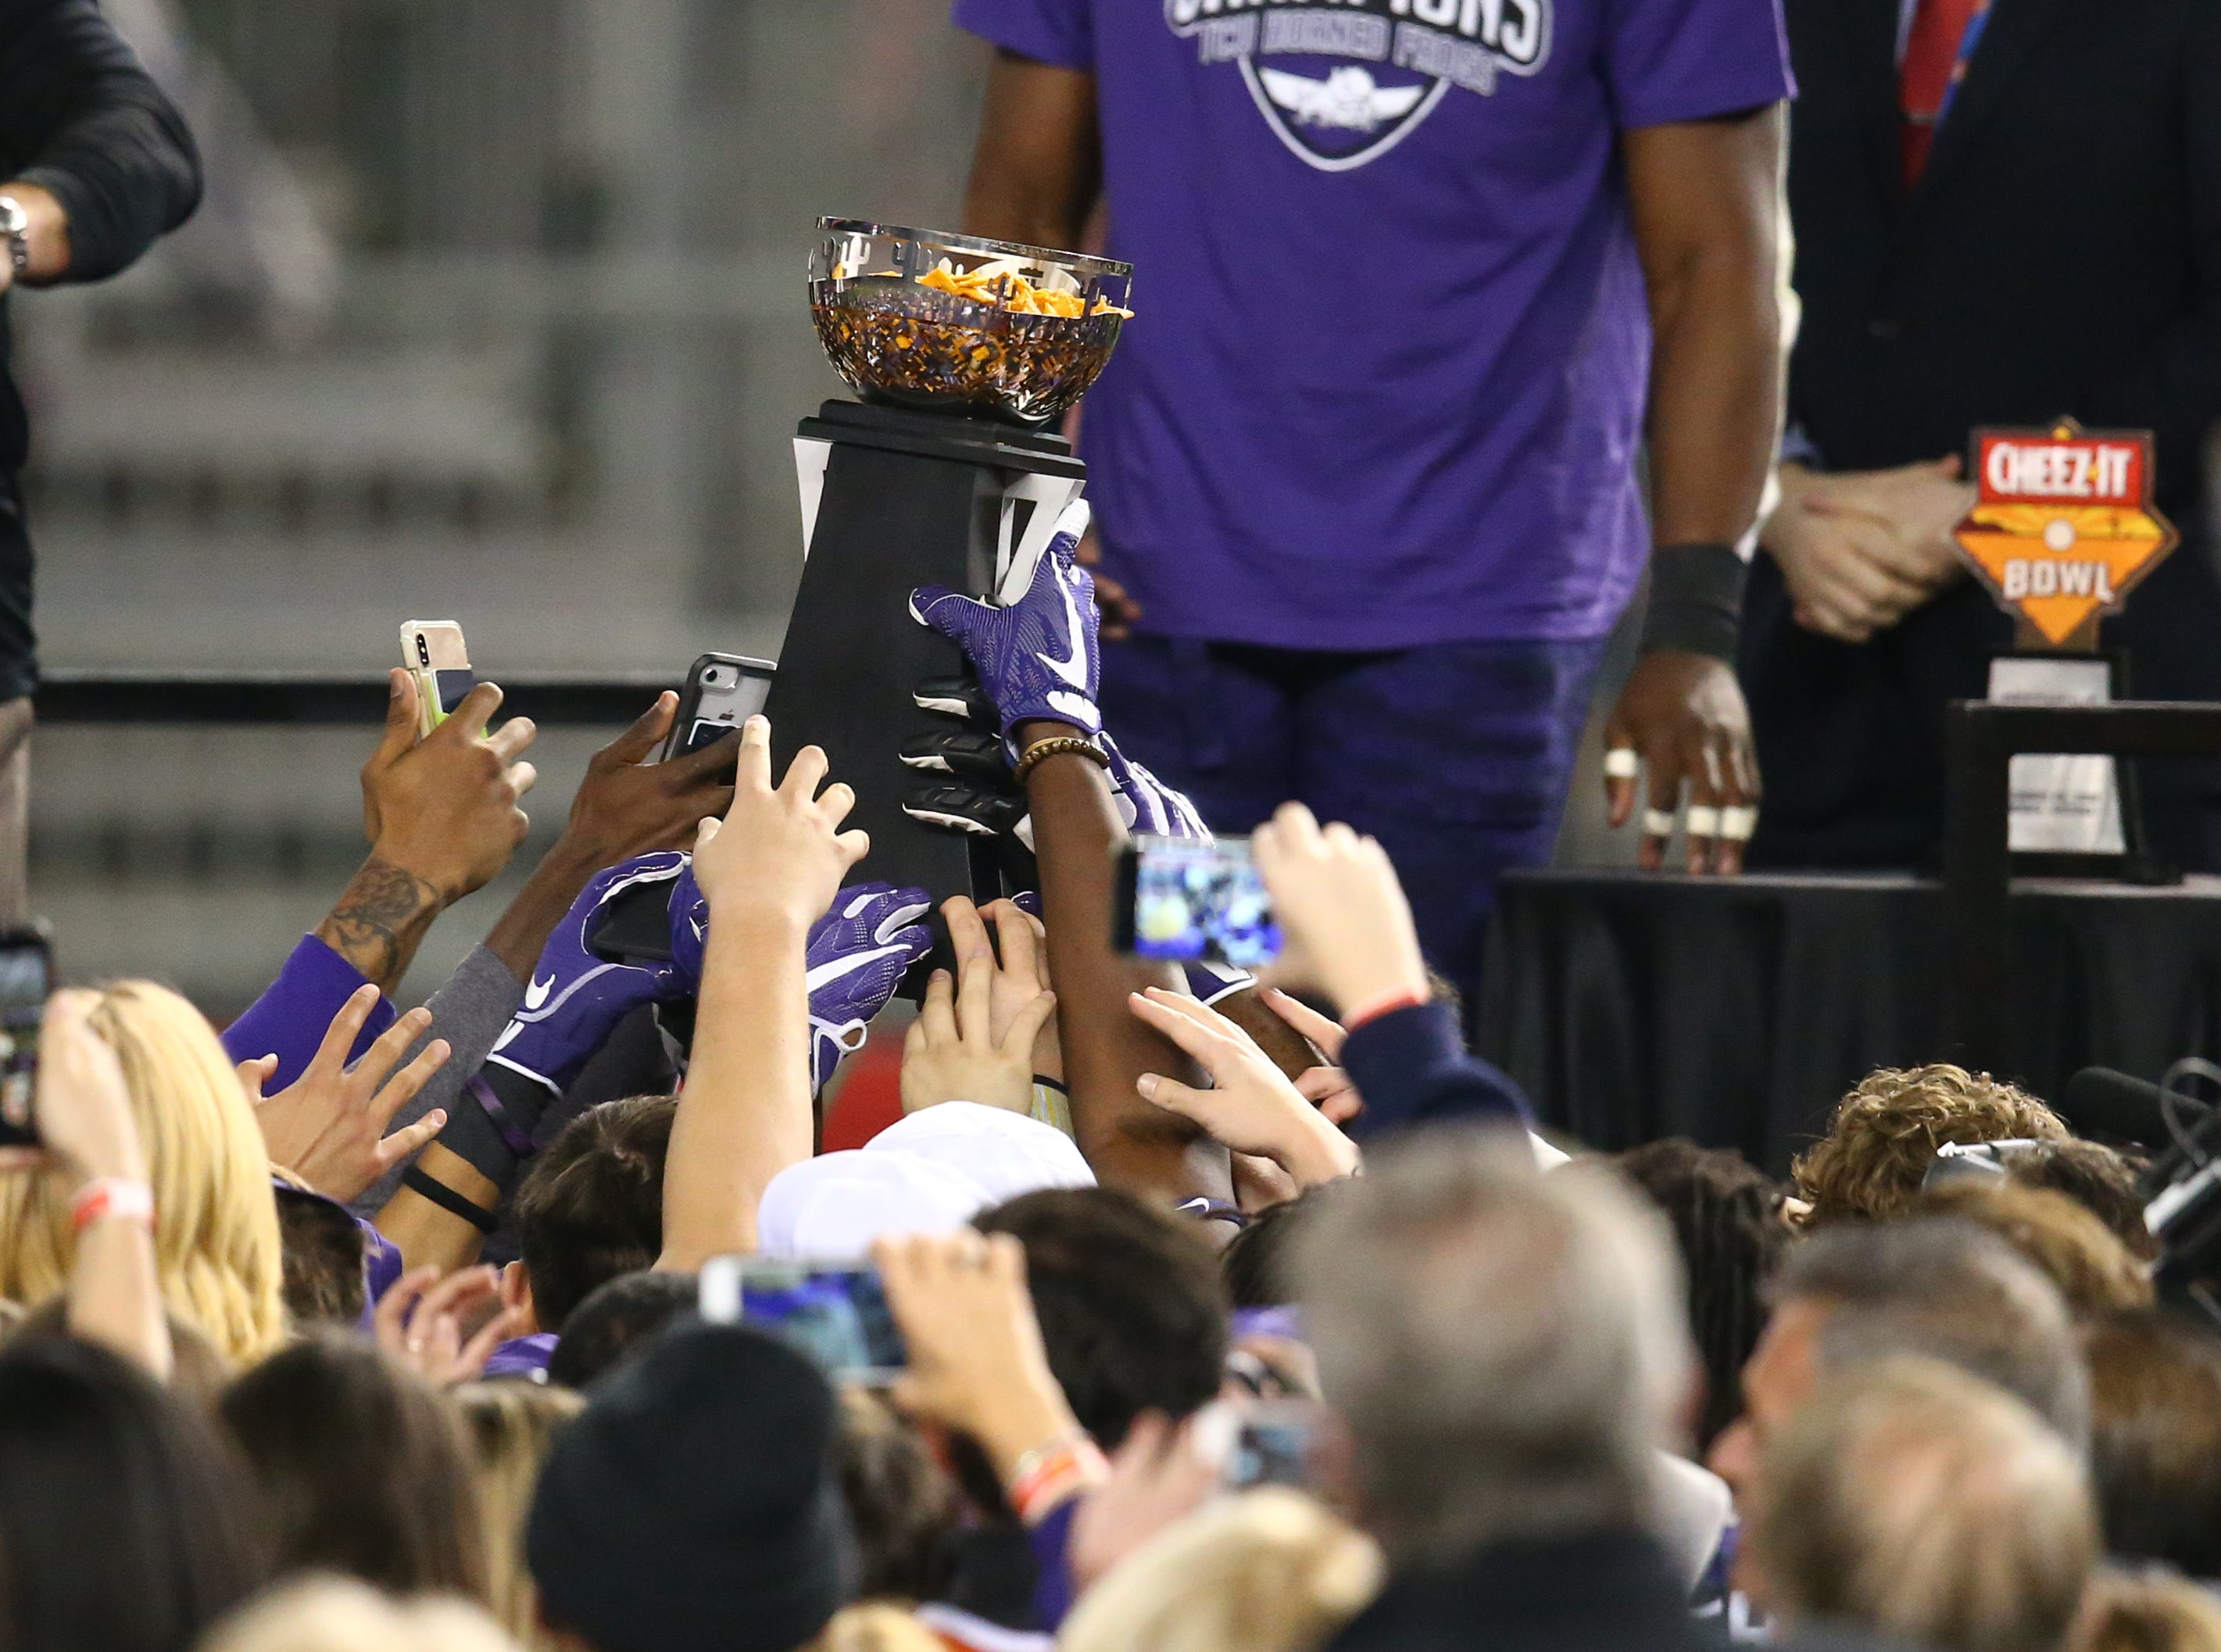 Dec 26, 2018; Phoenix, AZ, USA; Texas Christian Horned Frogs players celebrate with the trophy after defeating the California Golden Bears in overtime of the 2018 Cheez-It Bowl at Chase Field. Mandatory Credit: Mark J. Rebilas-USA TODAY Sports